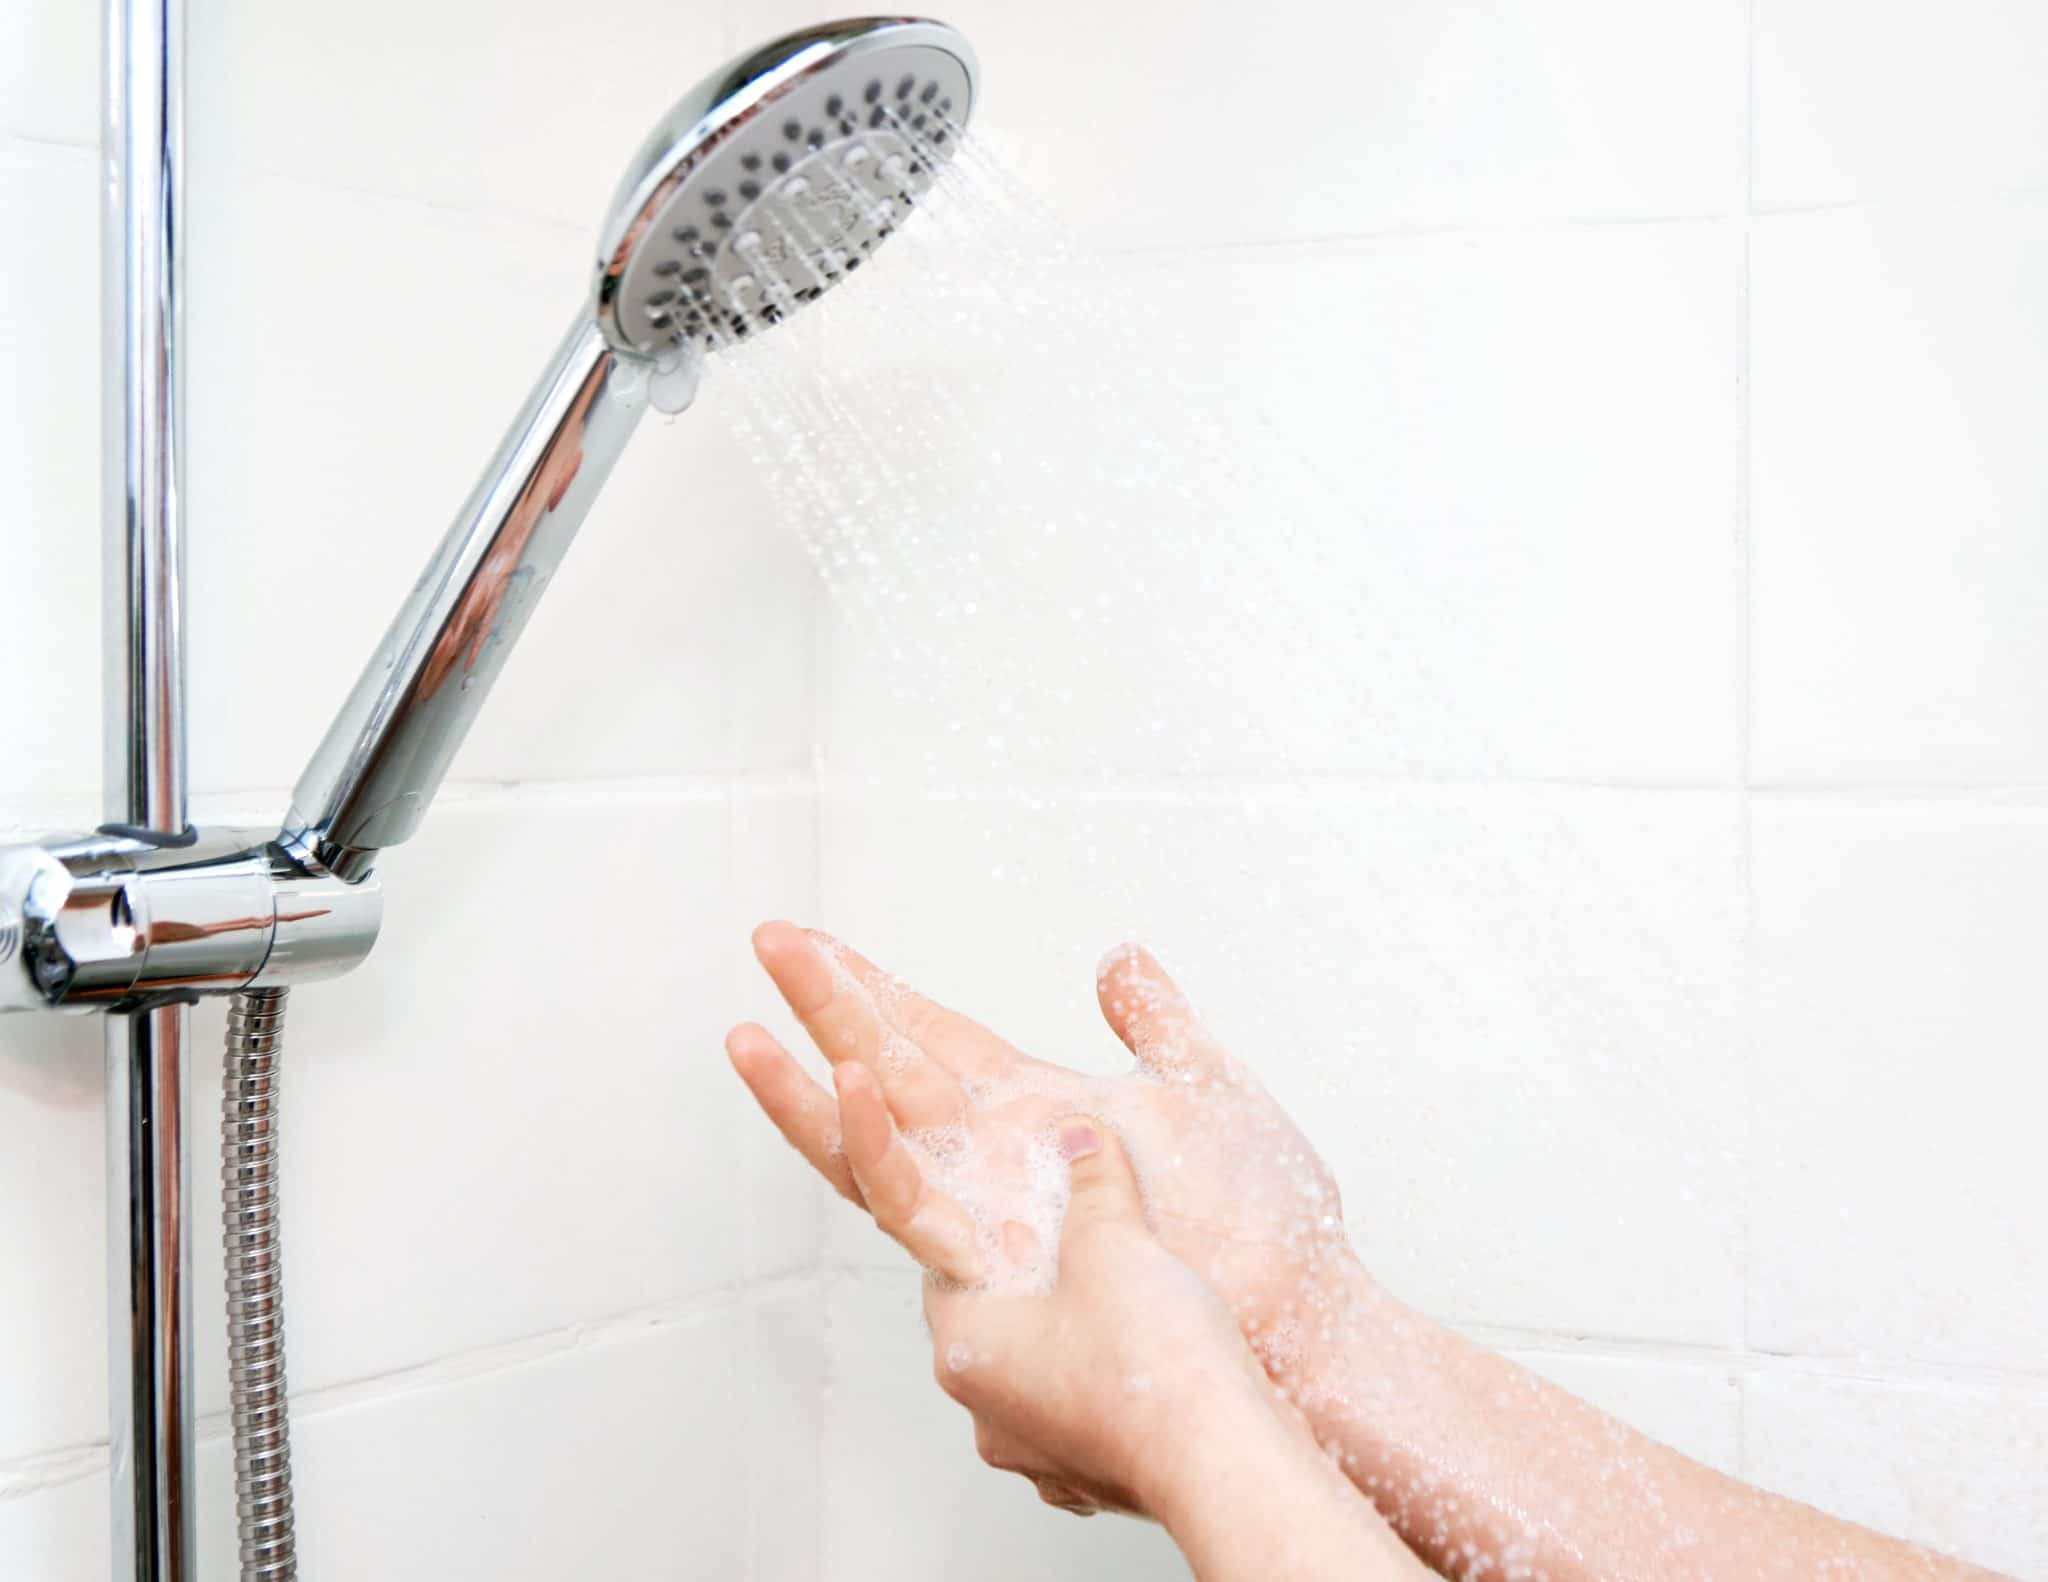 Women washing hands in water from RV shower head